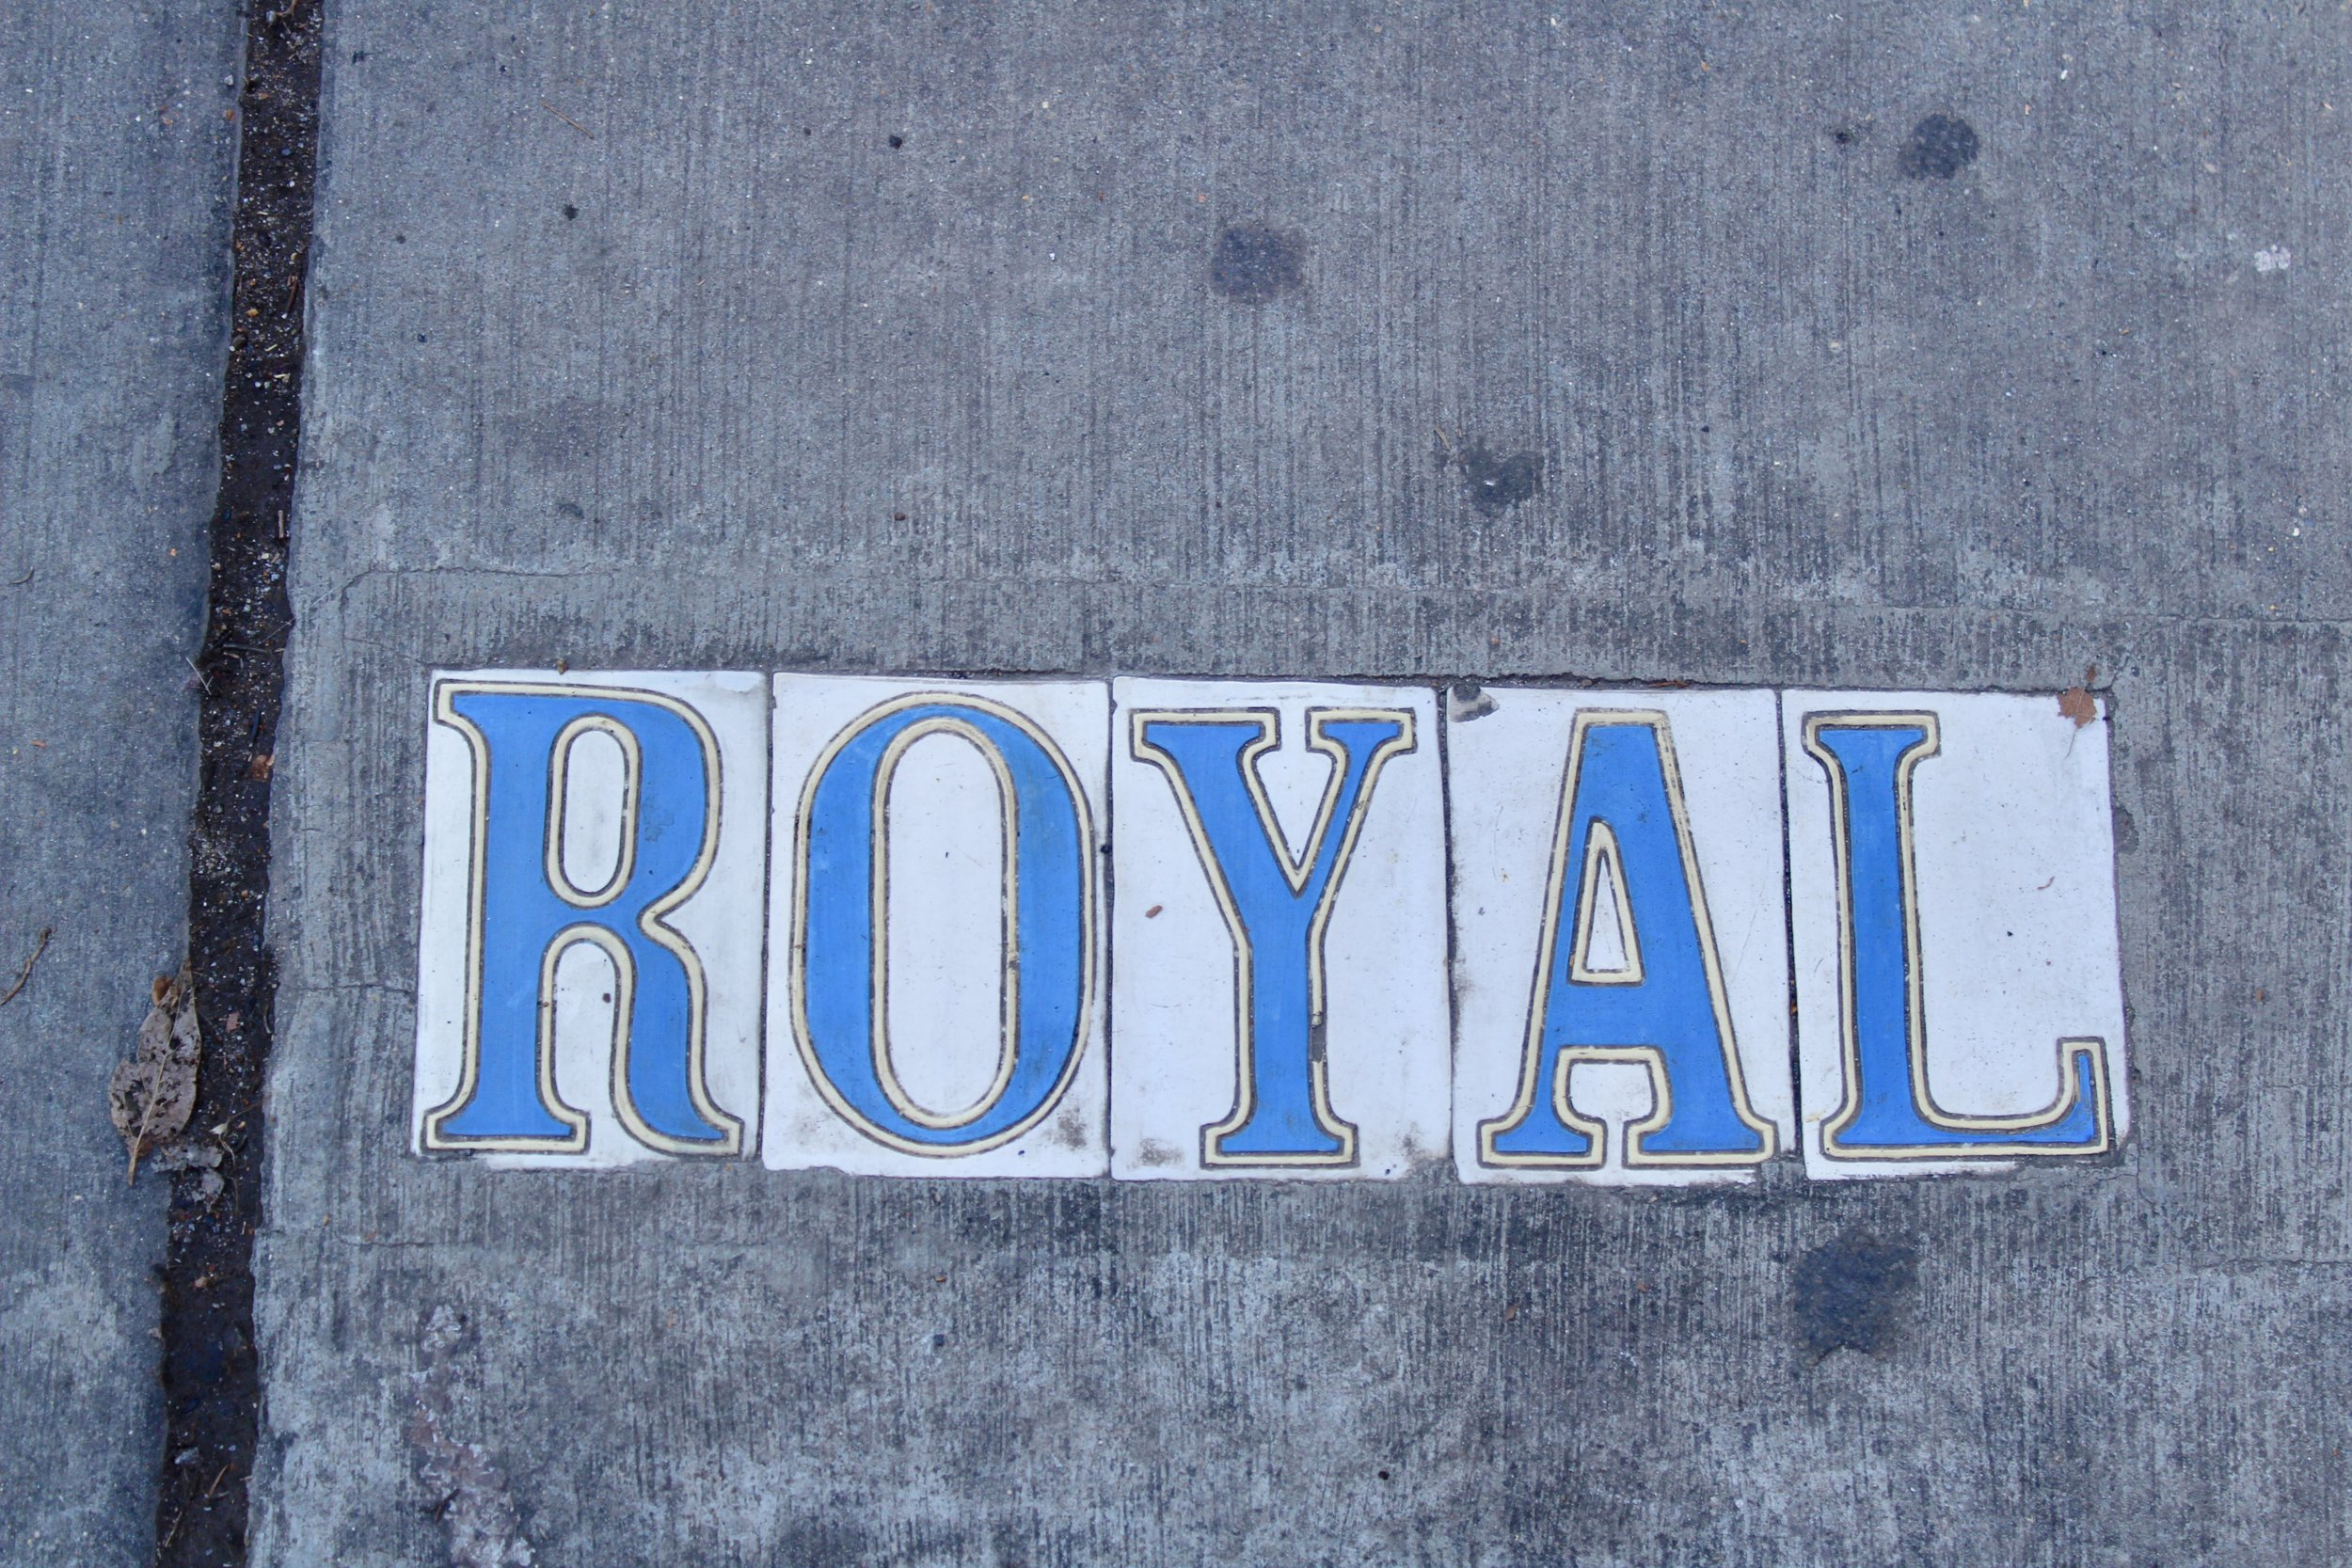 Royal Street French Quarter New Orleans